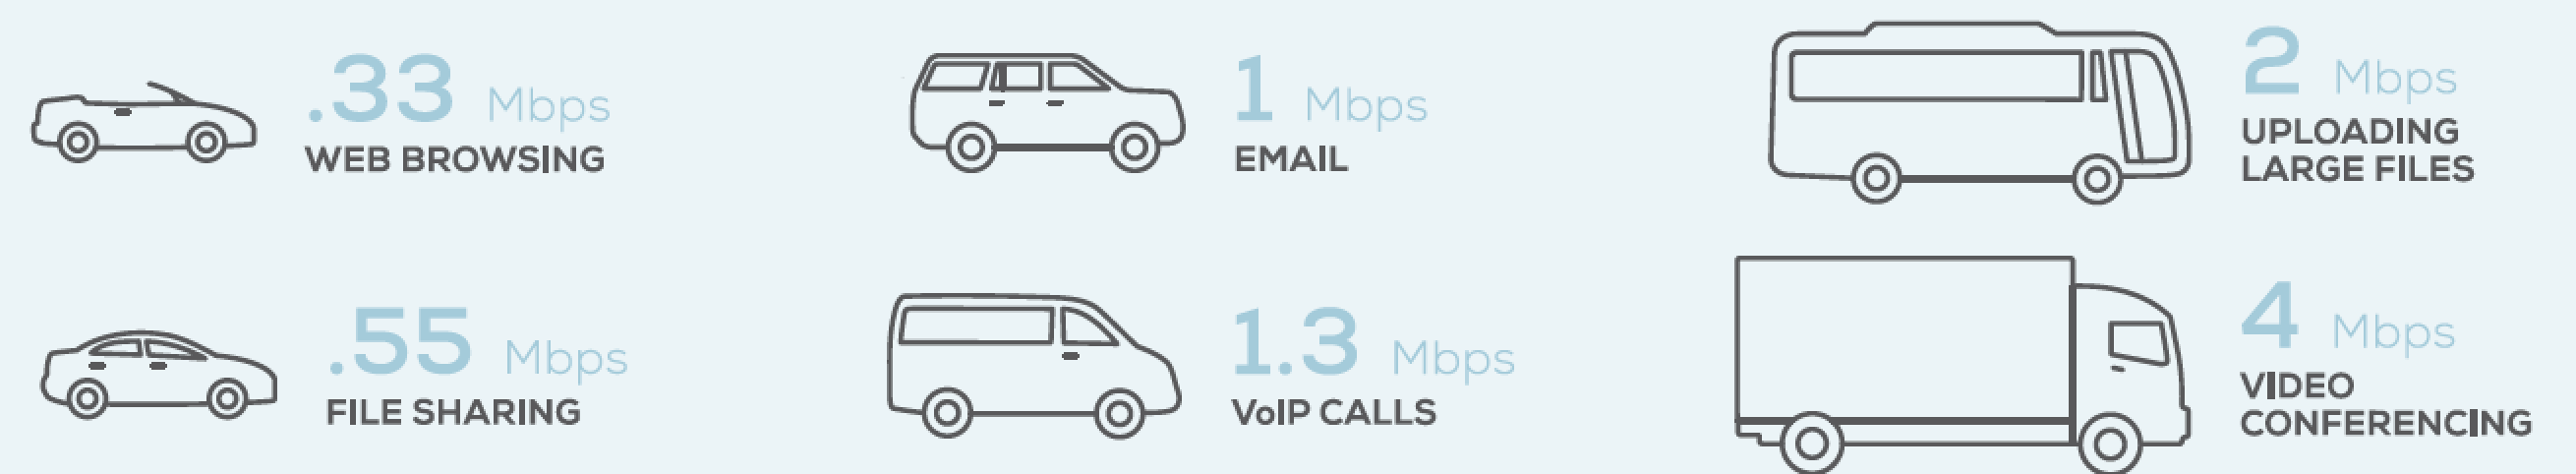 Not all network traffic is the same